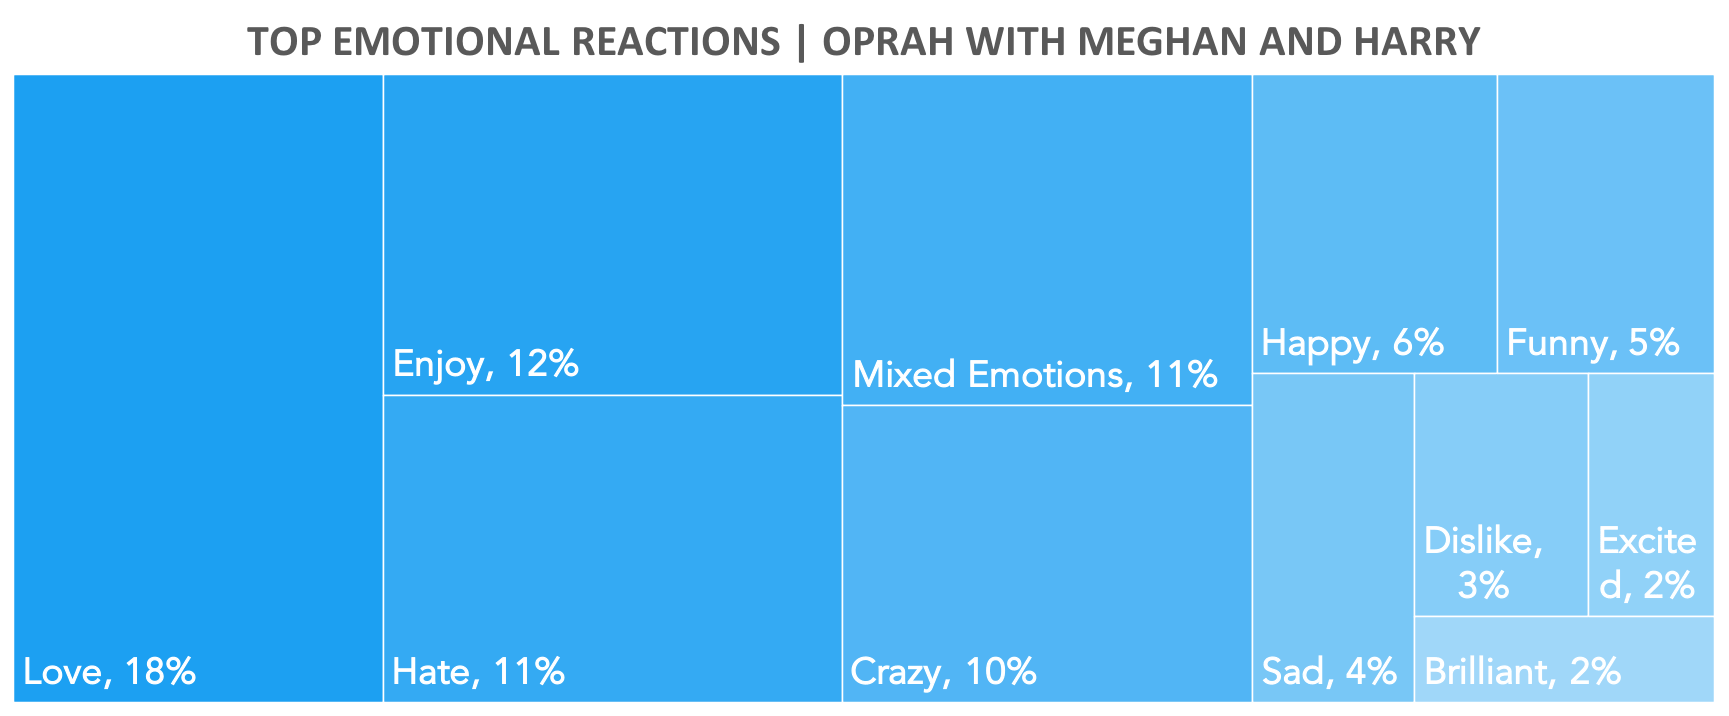 Source: Canvs, Oprah with Meghan and Harry Airing Window + / - 3 Hours Total Tweets, Top Emotional Reactions